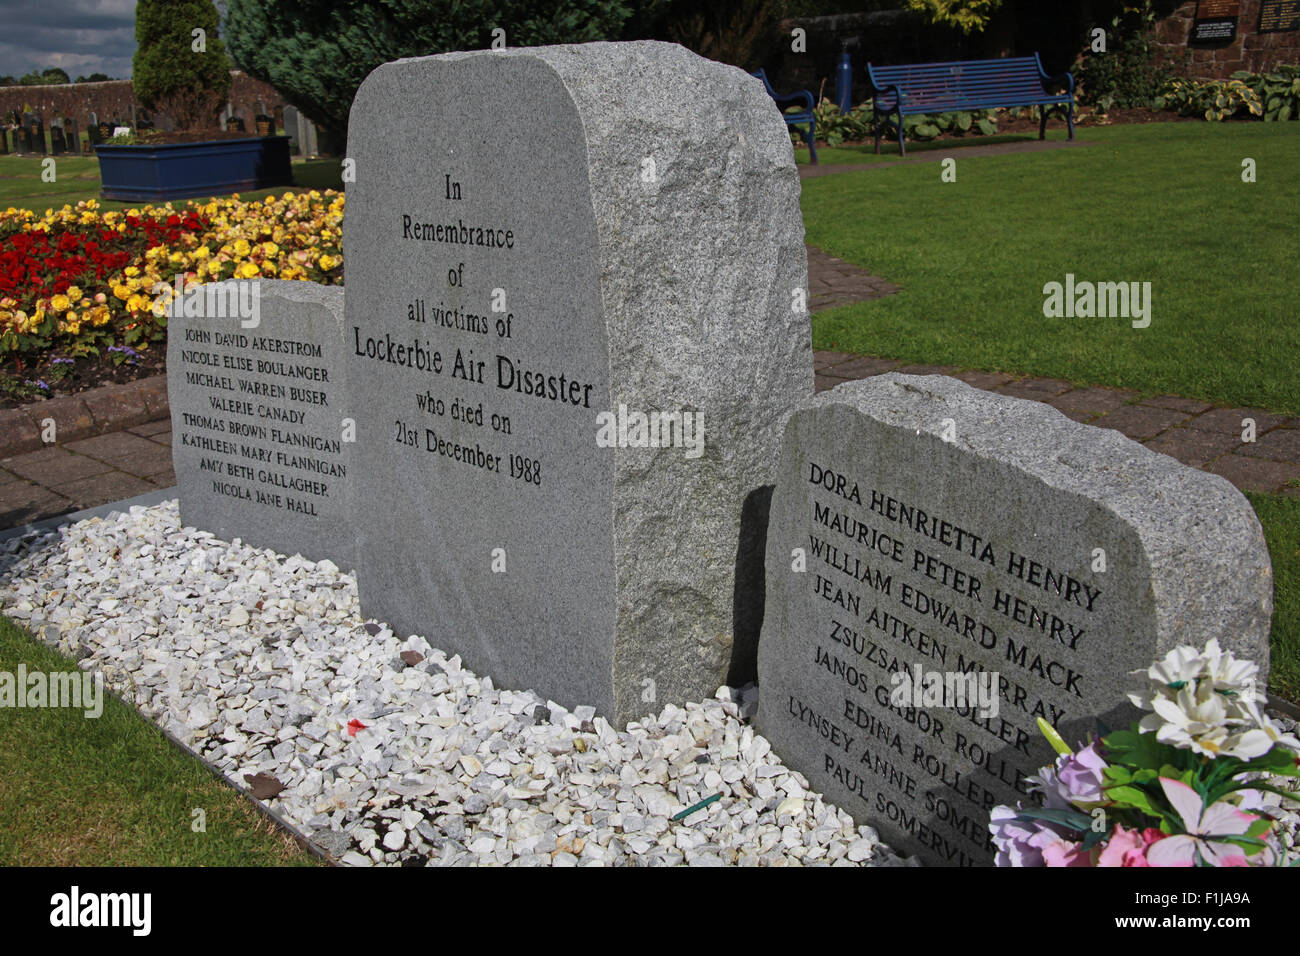 Lockerbie PanAm103 In Rememberance Memorial Stones,Scotland - Stock Image